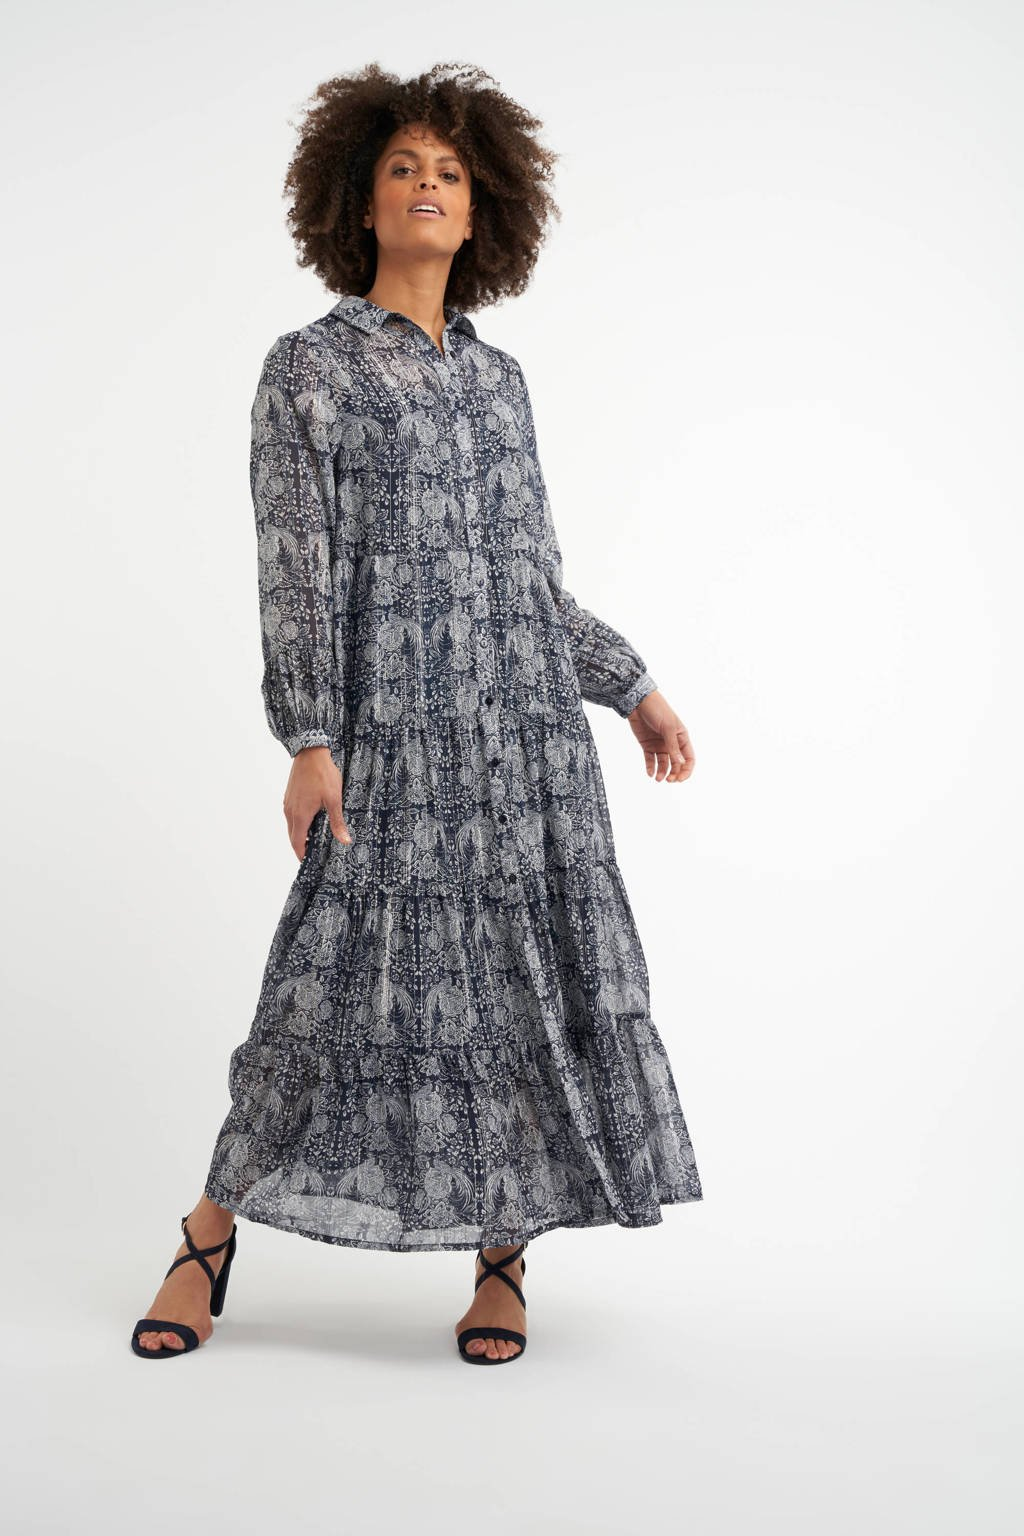 MS Mode semi-transparante maxi blousejurk met all over print en glitters donkerblauw/wit, Donkerblauw/wit